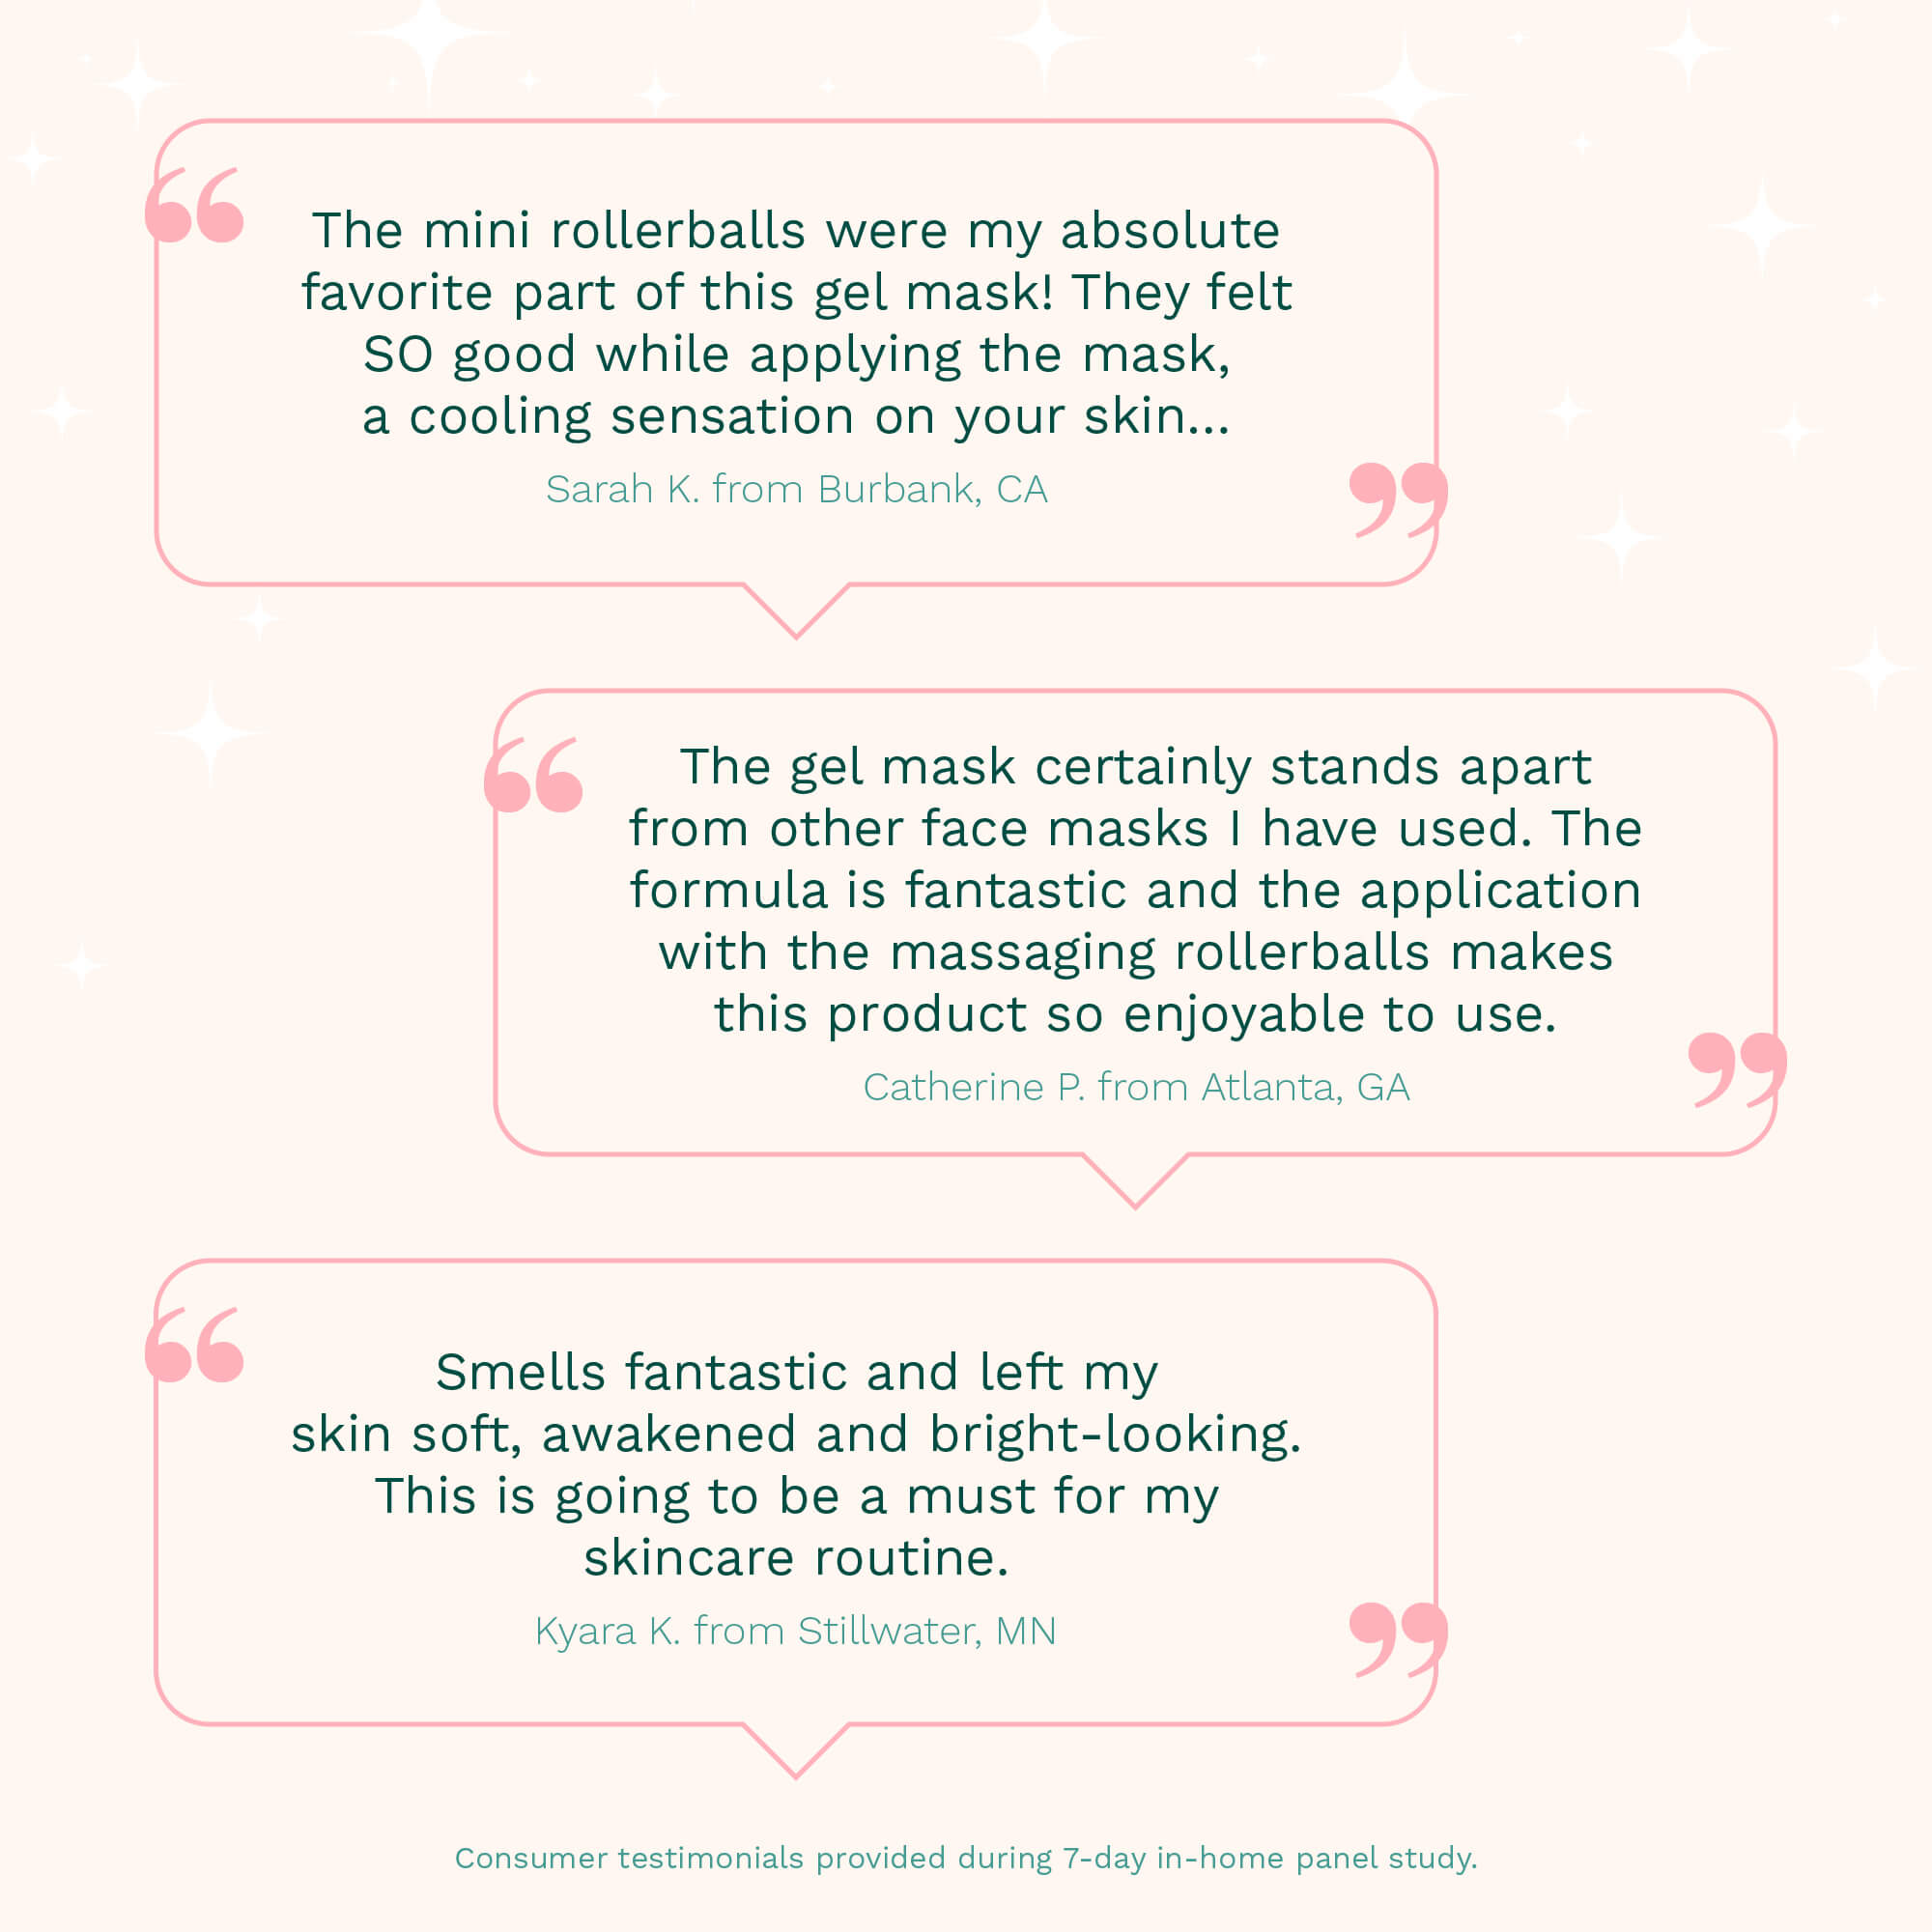 quotes about the roll with it gel detox mask that were gathered from a consumer research panel